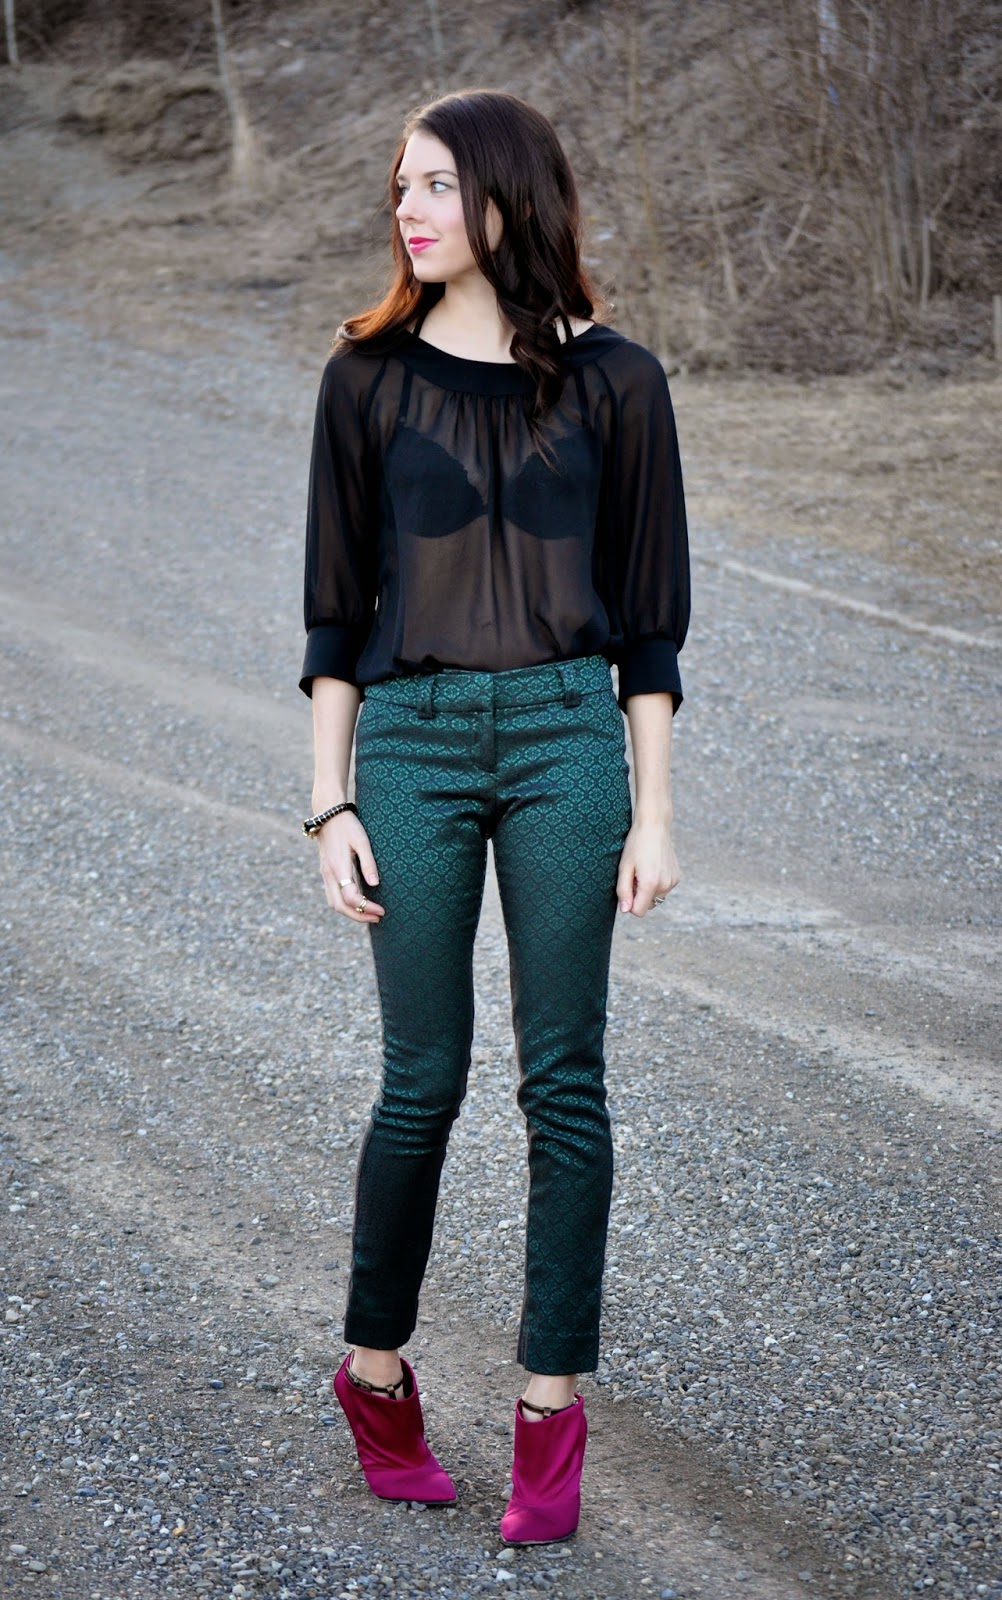 How to wear sheer tops